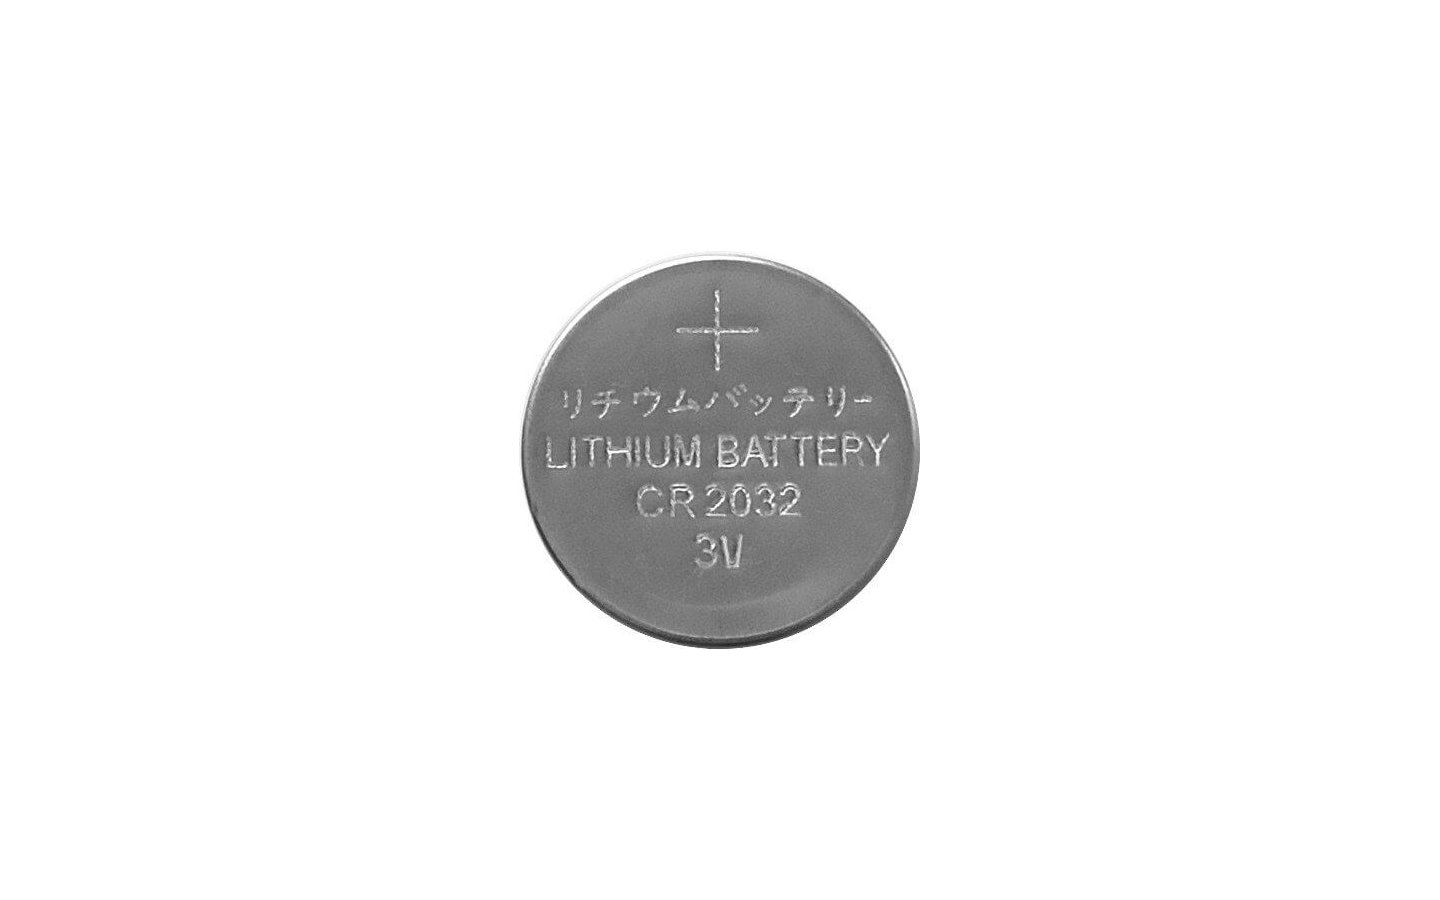 CR2032-batteri, Lithium 3V, 6-pack